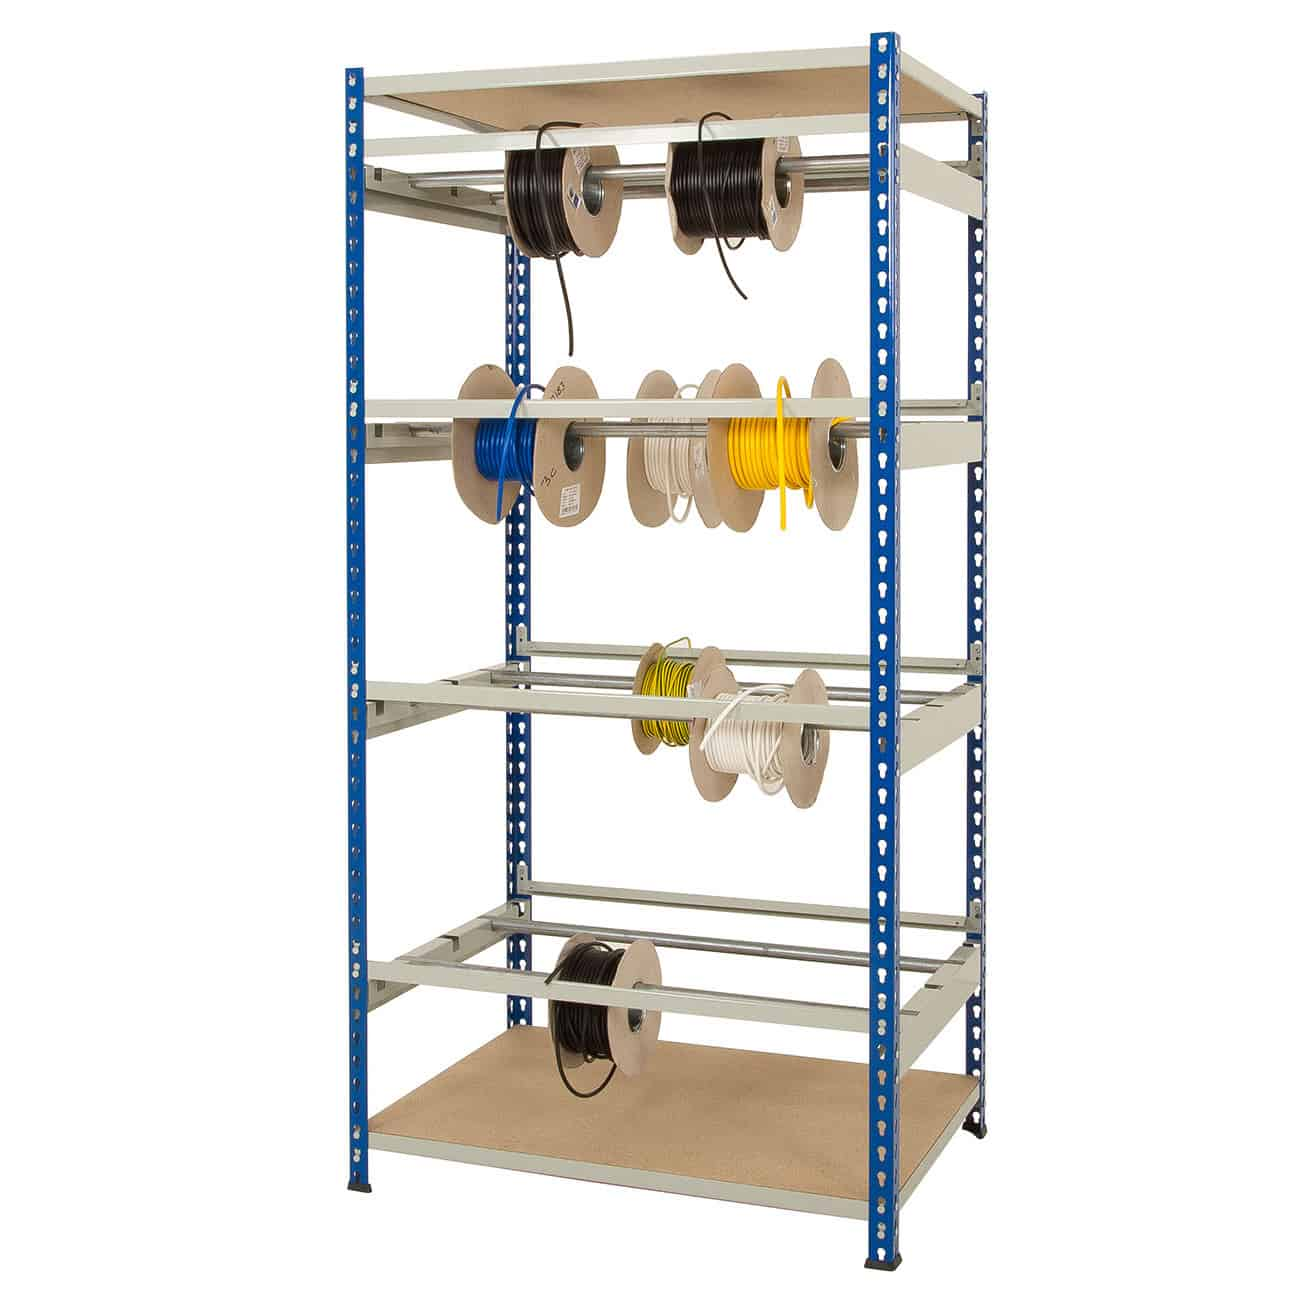 Rivet Static Cable Reel Storage Racks